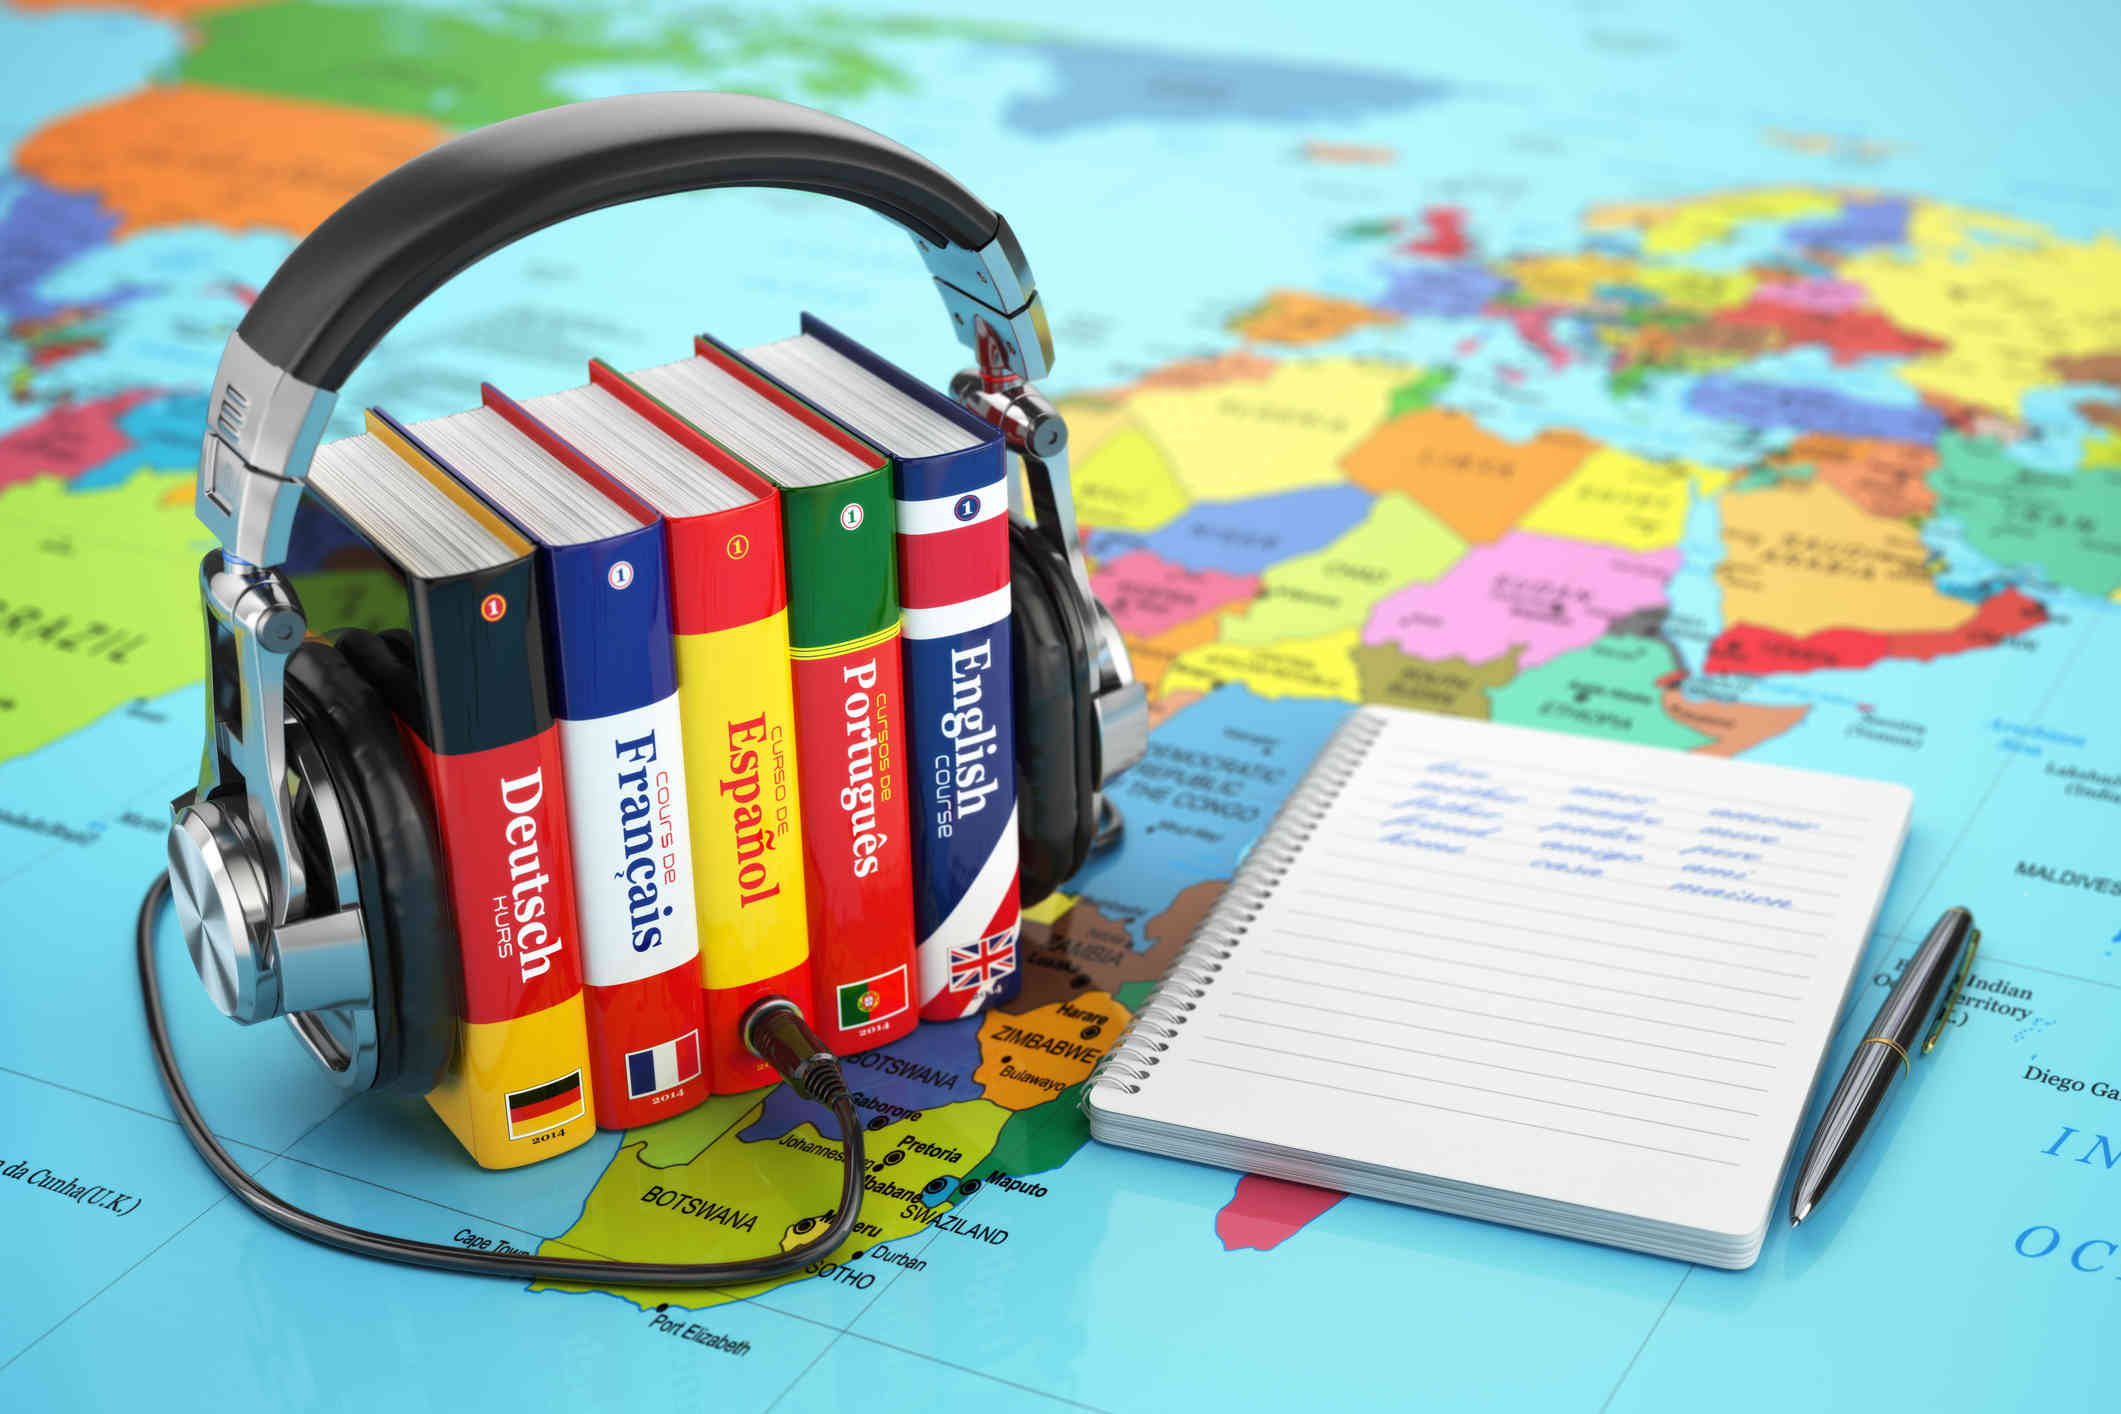 Language Training Centers are helping Multilingual Ambitions in India, and Spawning Big Business